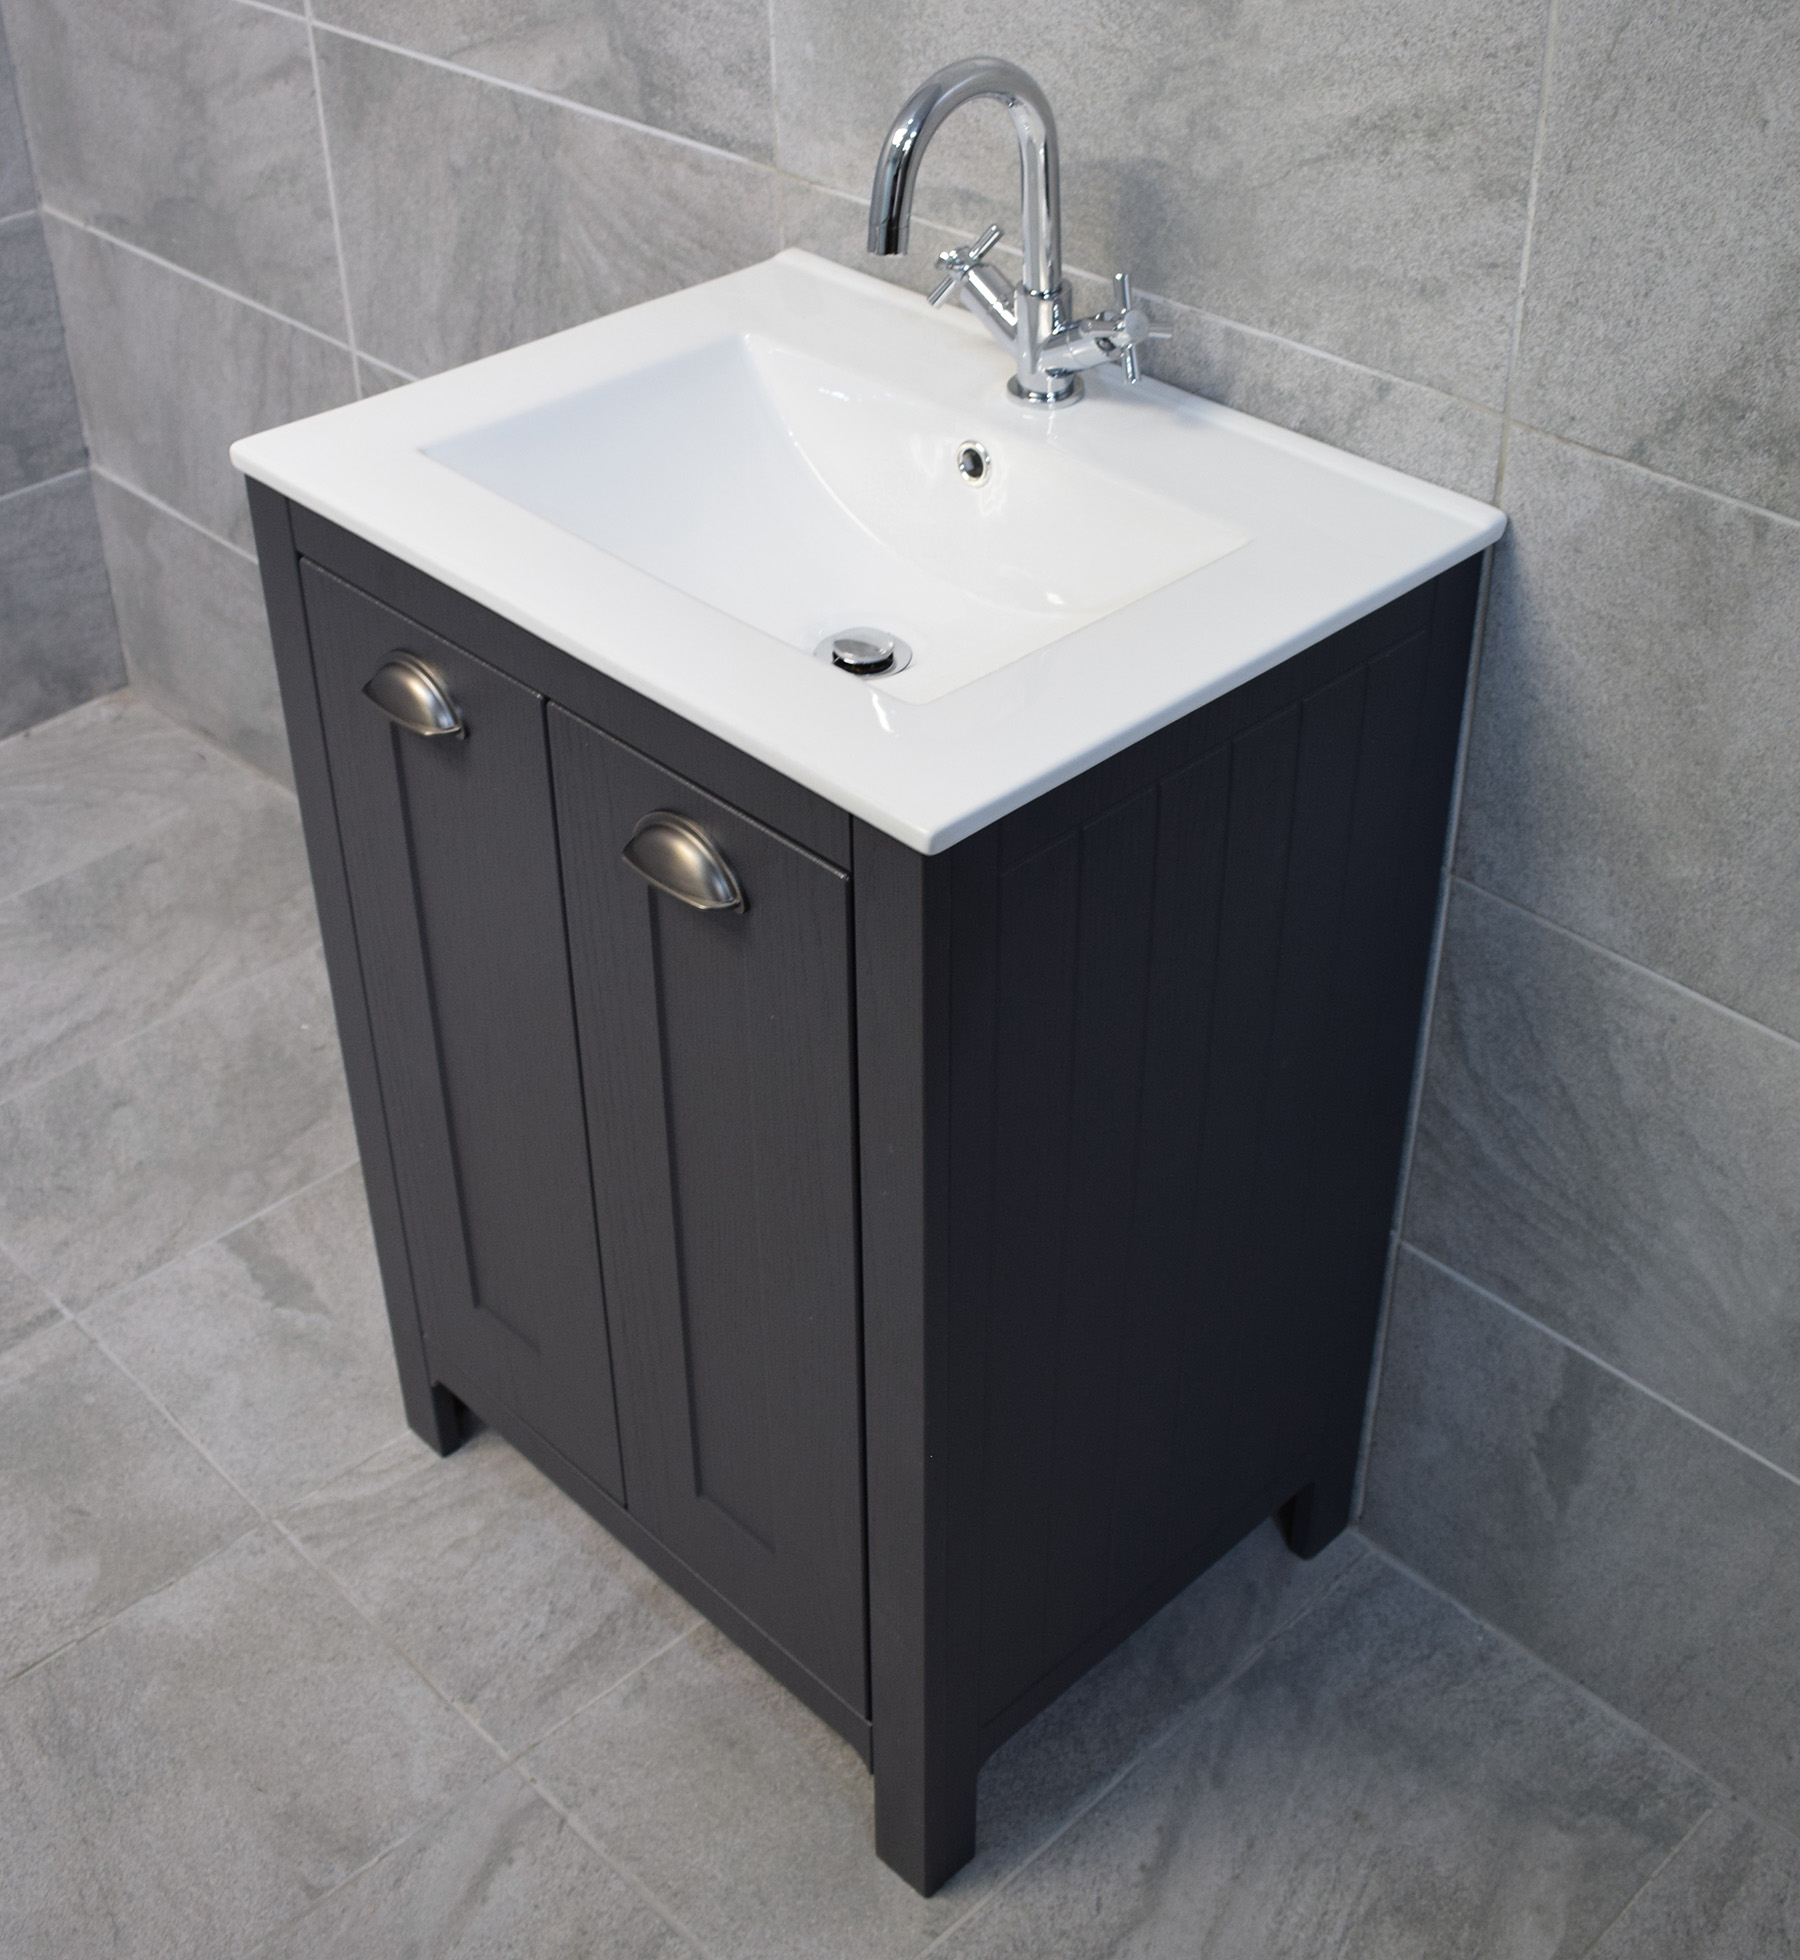 derby 600mm dark grey bathroom vanity sink basin unit. Black Bedroom Furniture Sets. Home Design Ideas